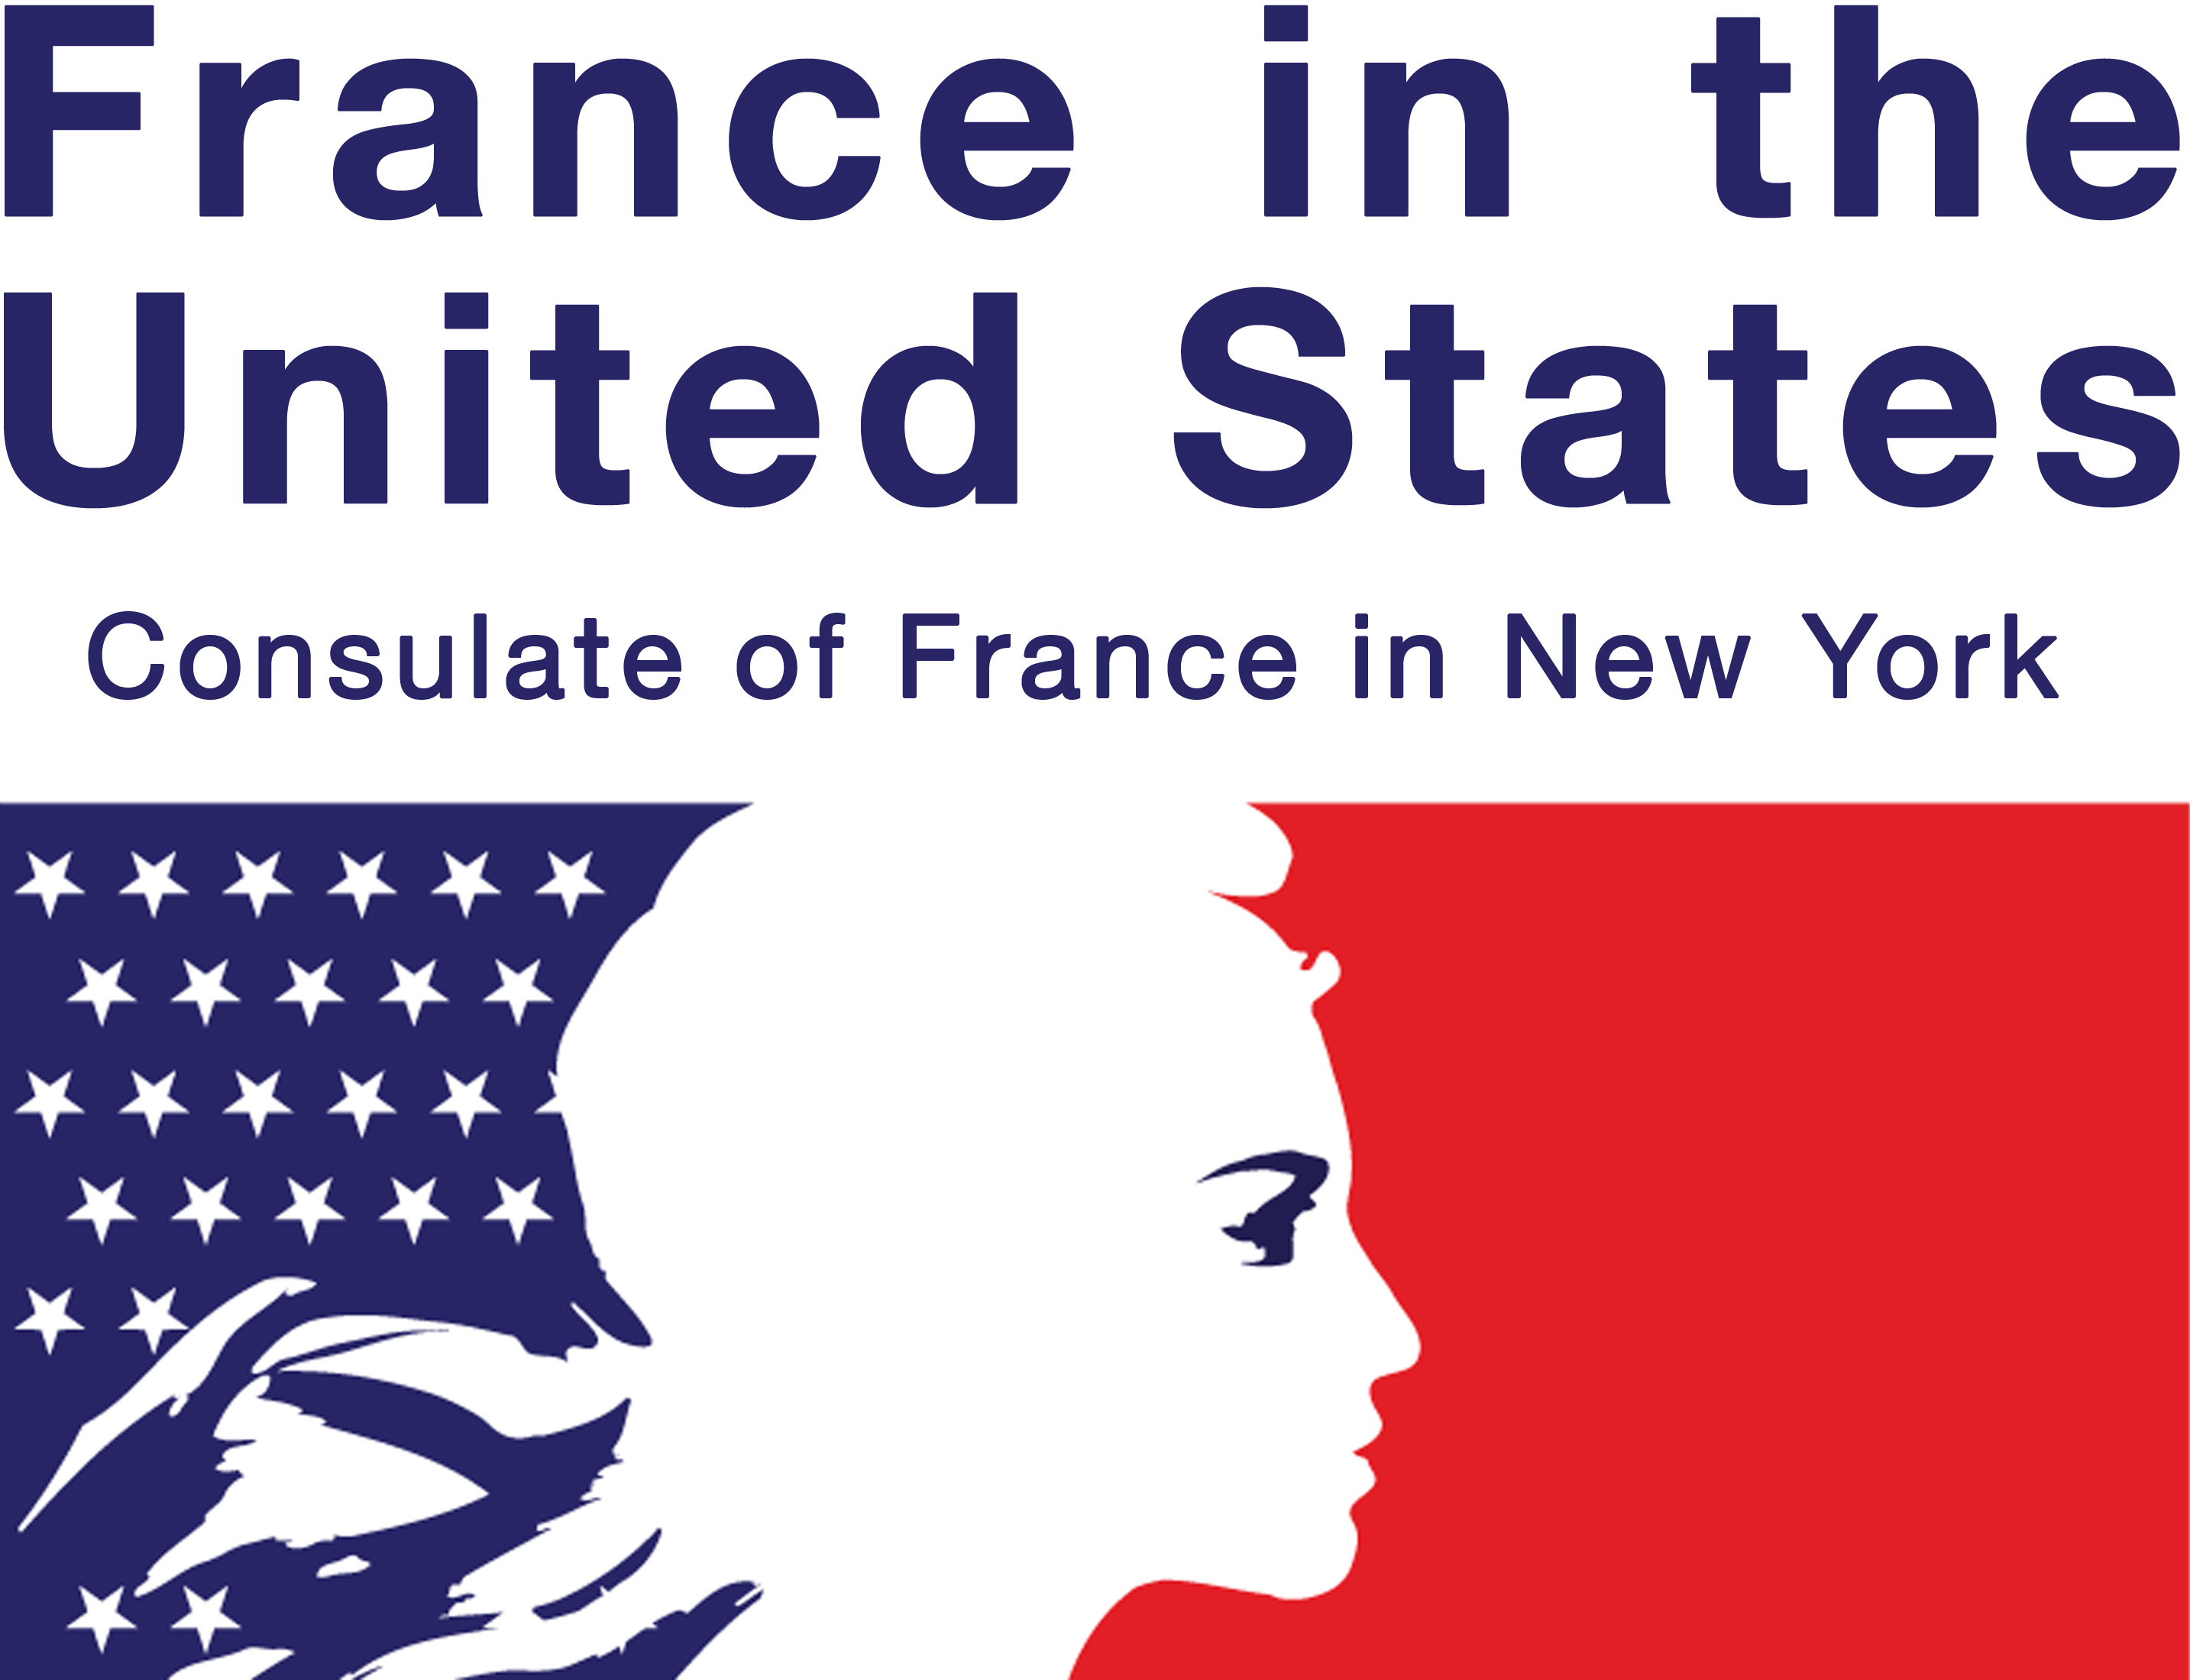 Consulate of France in New York